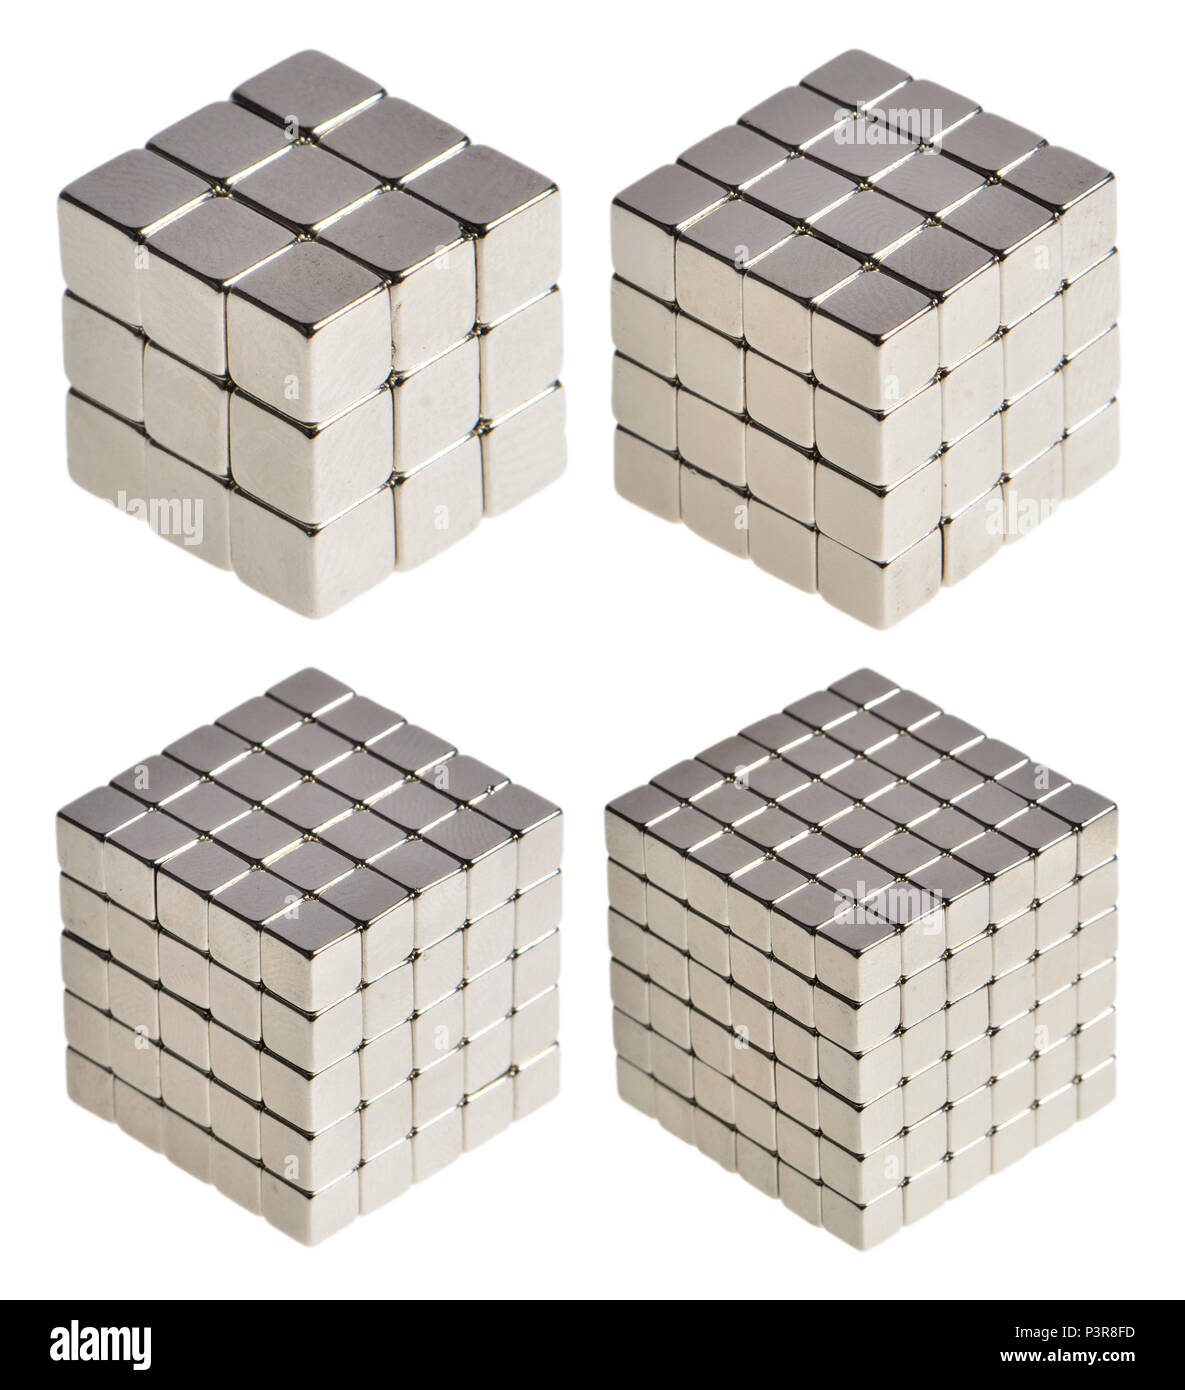 Cube numbers (numbers multiplied by themselves twice) 27, 64, 125, 216 - Stock Image